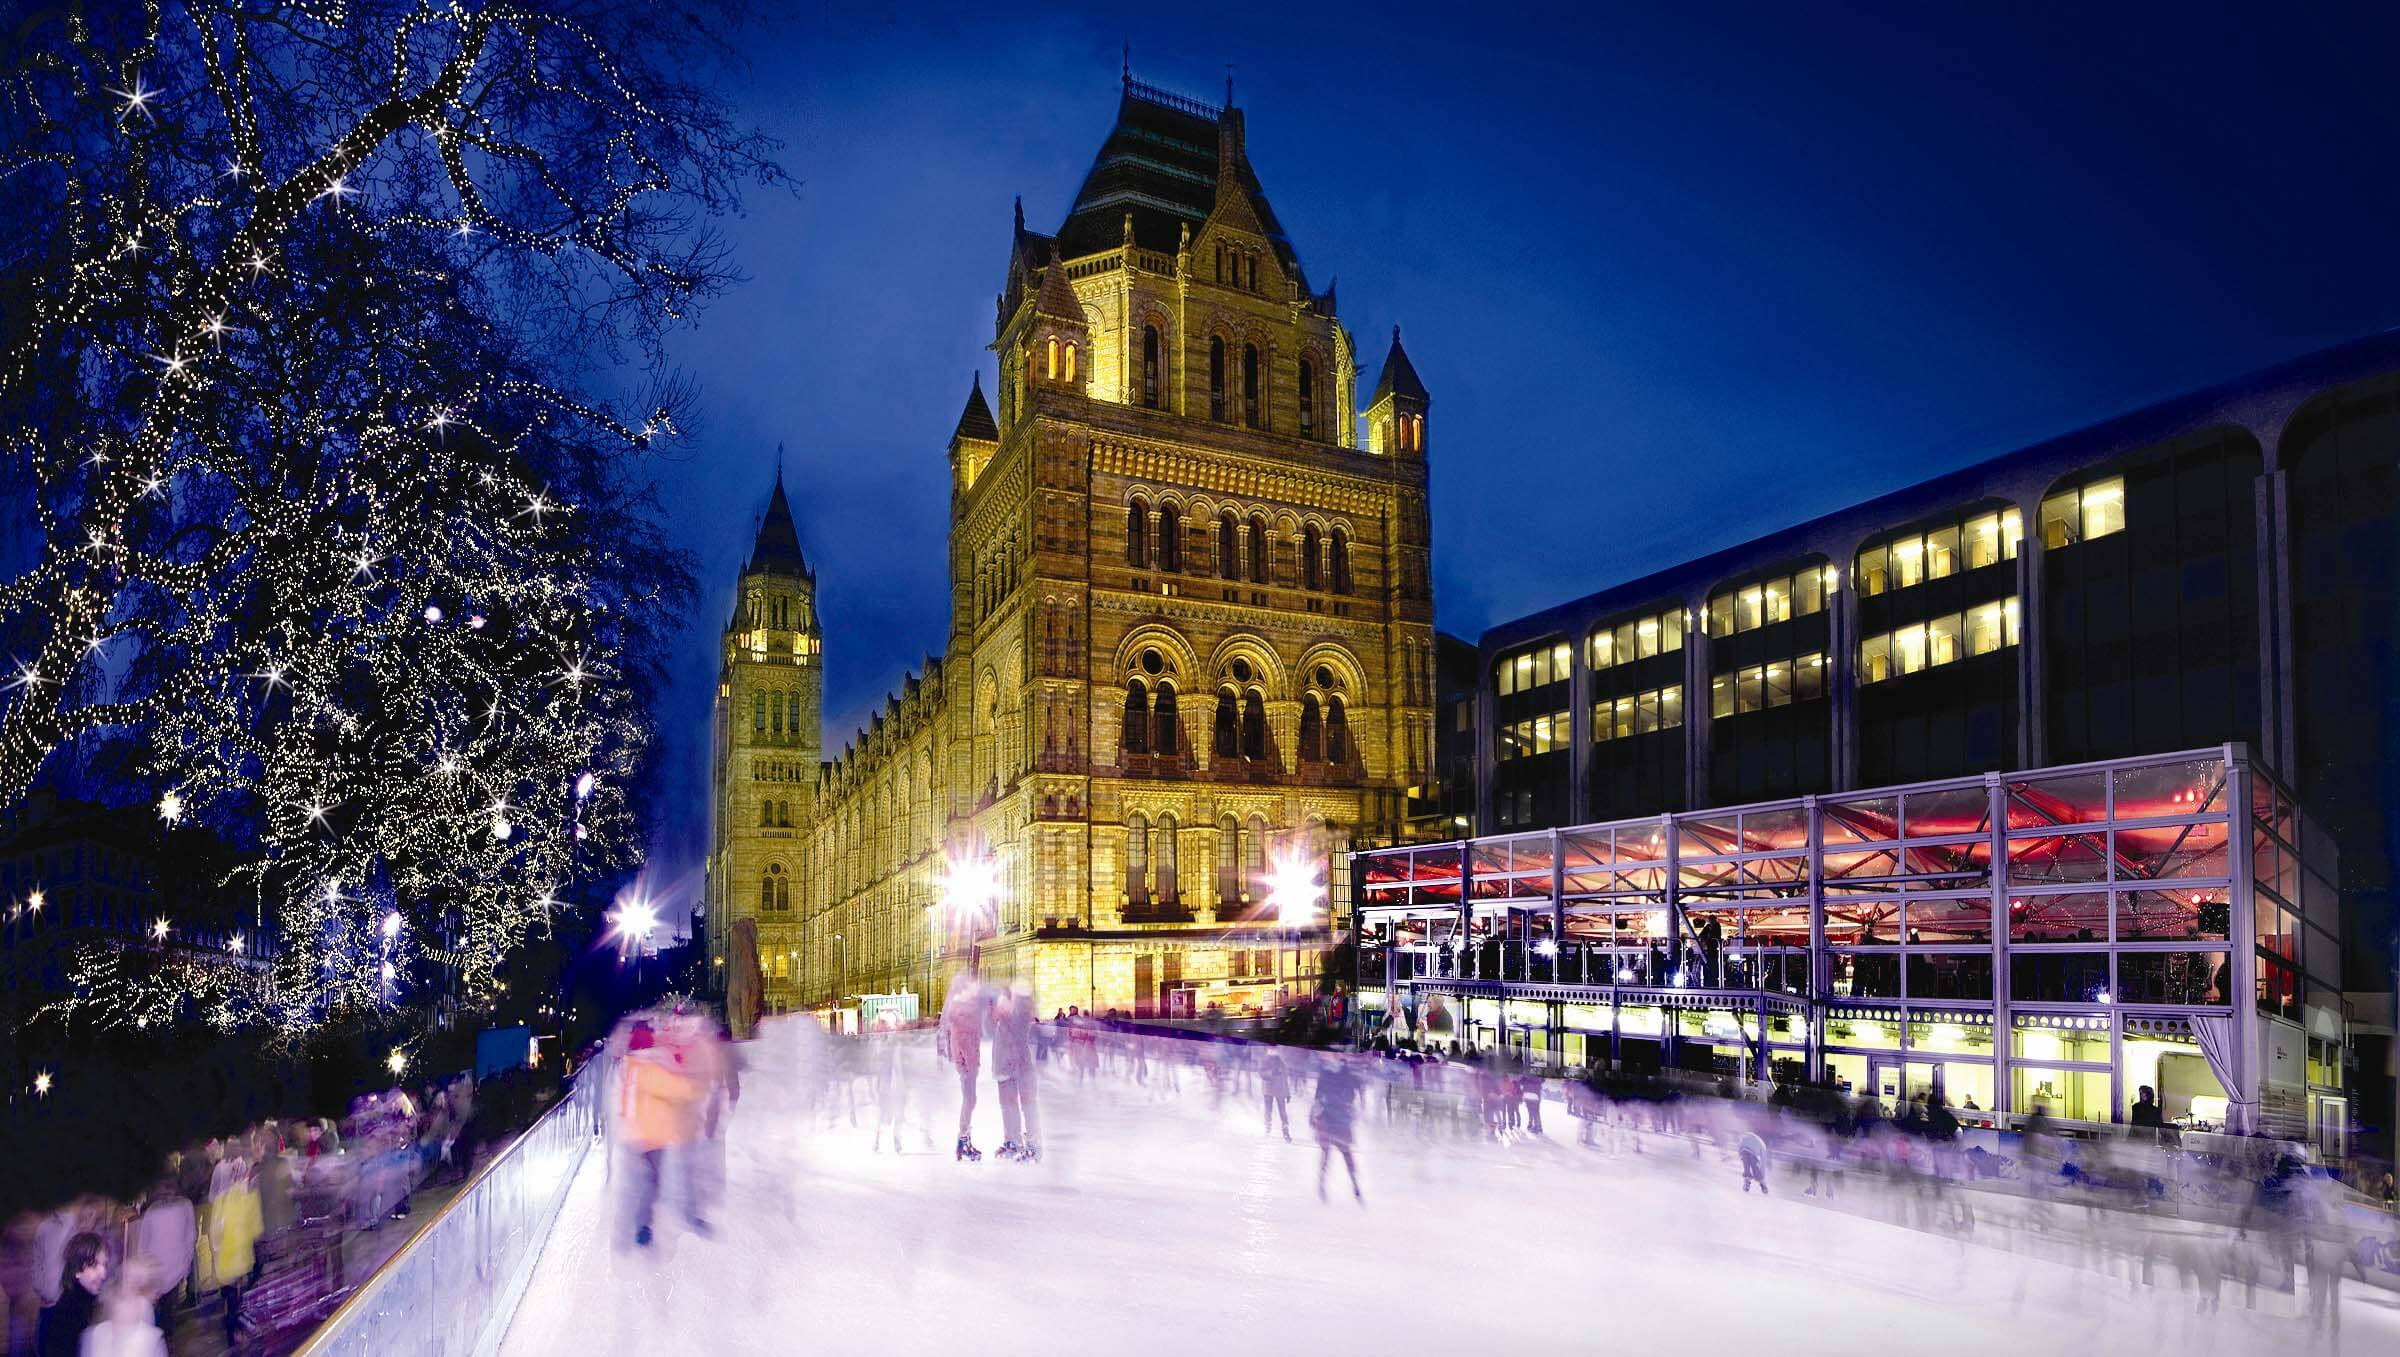 Skates: Natural History Museum, Things to Do in London, what's on in london, events in london, free london, london restaurants, best restaurants in london, restaurants in london, london, this weekend in london, london events, free london, london fun